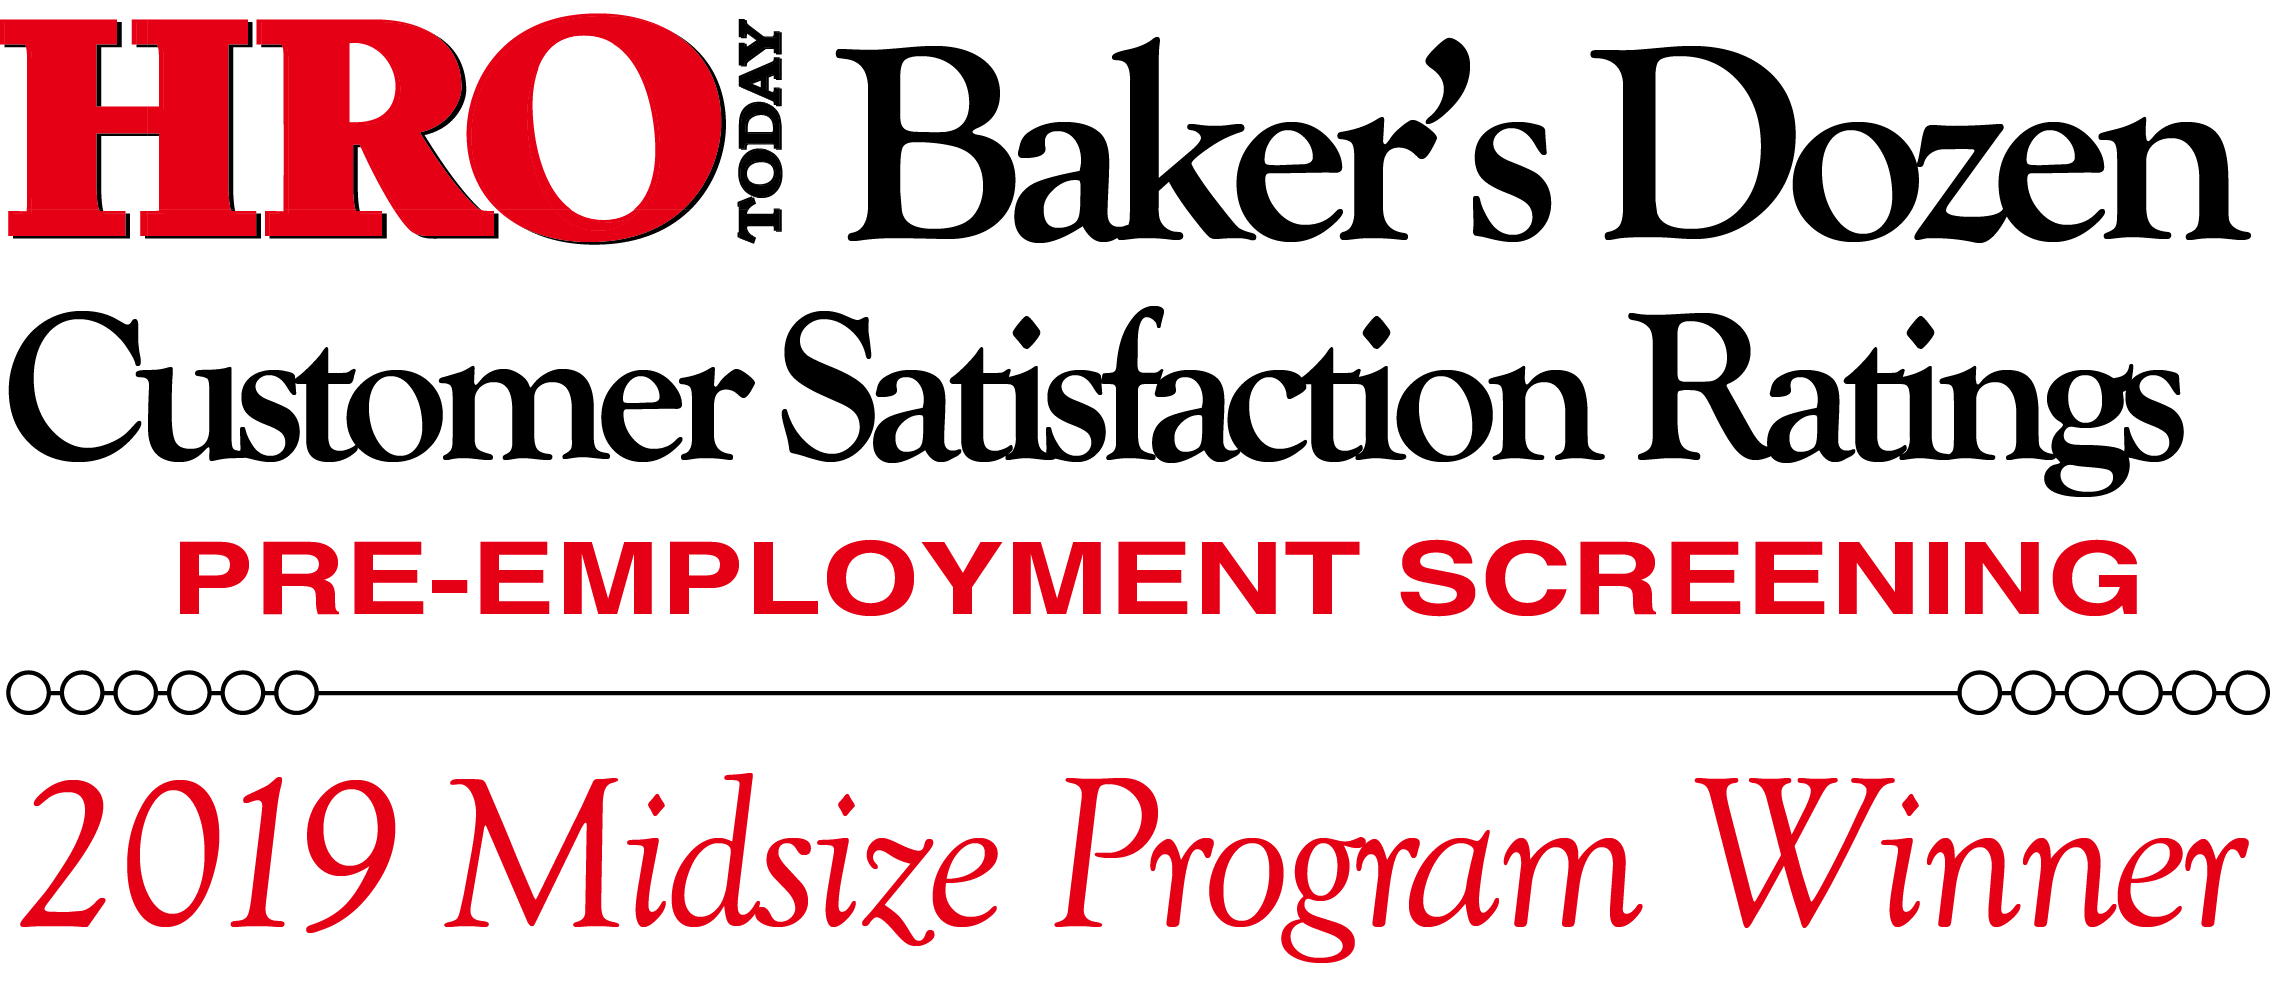 HRO Today Baker's Dozen 2019 Midsize Program Winner